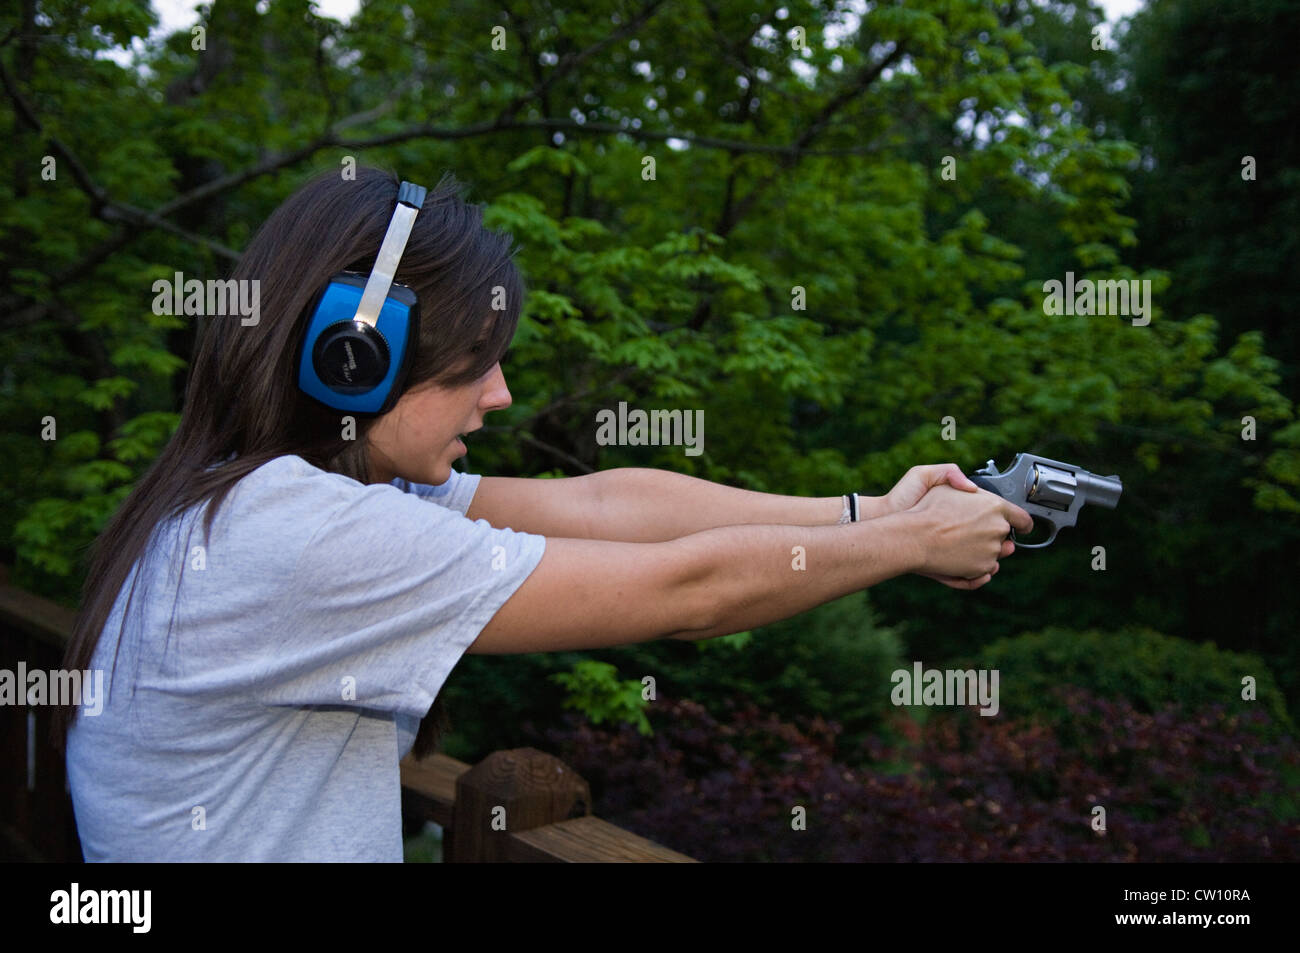 Teenage Girl Shooting a  38 Special Snubnose Revolver Stock